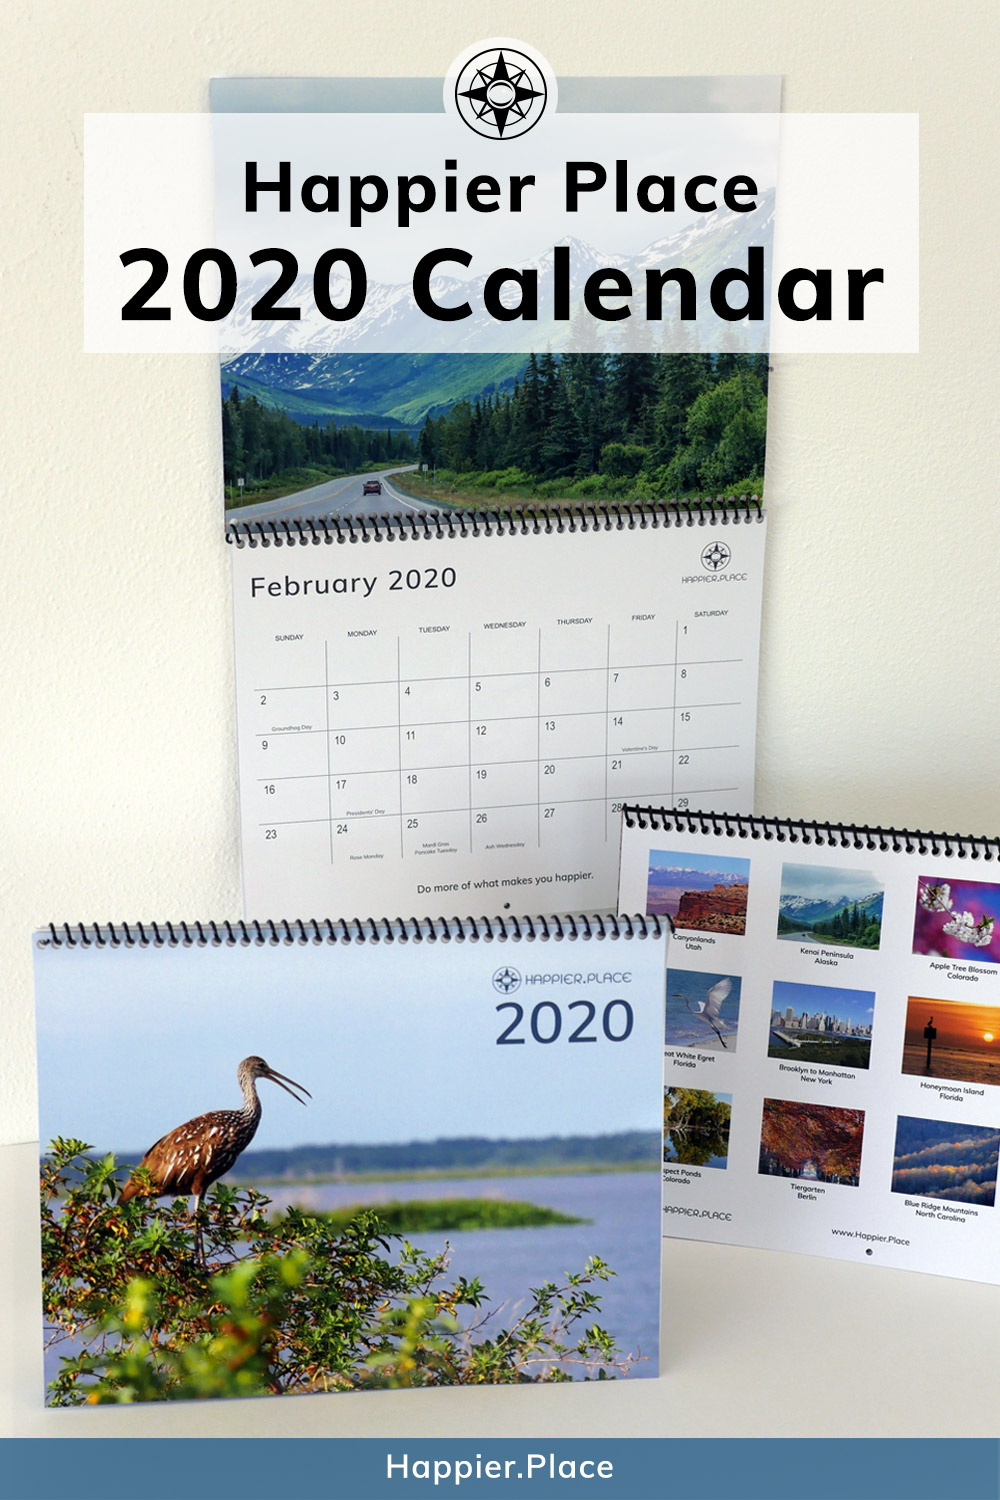 12 Months of Happier-ness: The 2020 Happier Place Calendar